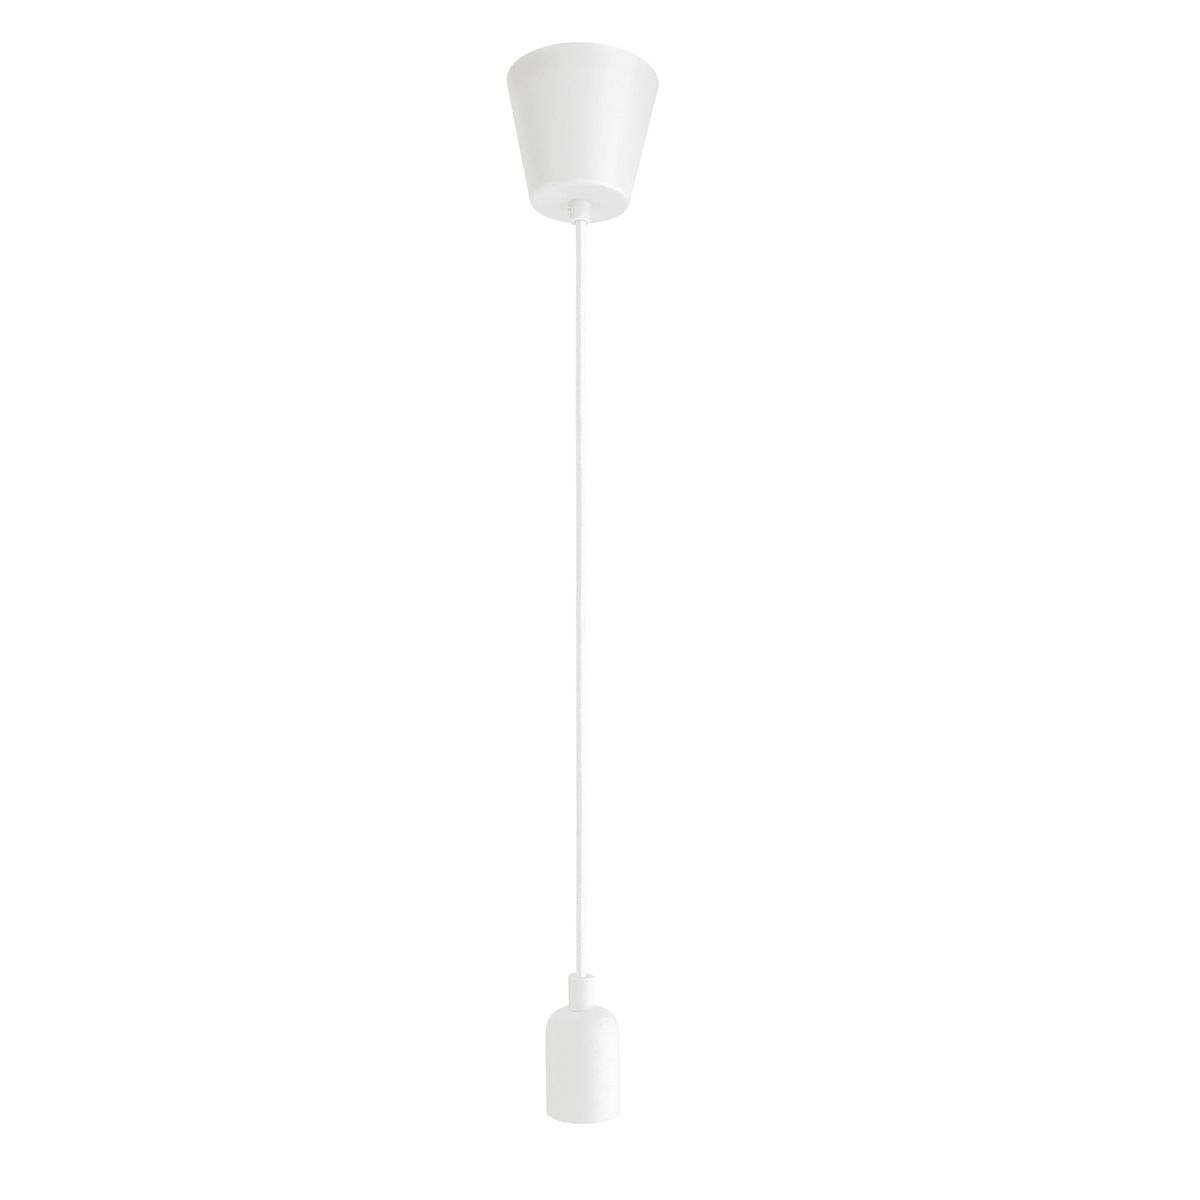 Suspension douille en silicone blanc Coloma Inspire